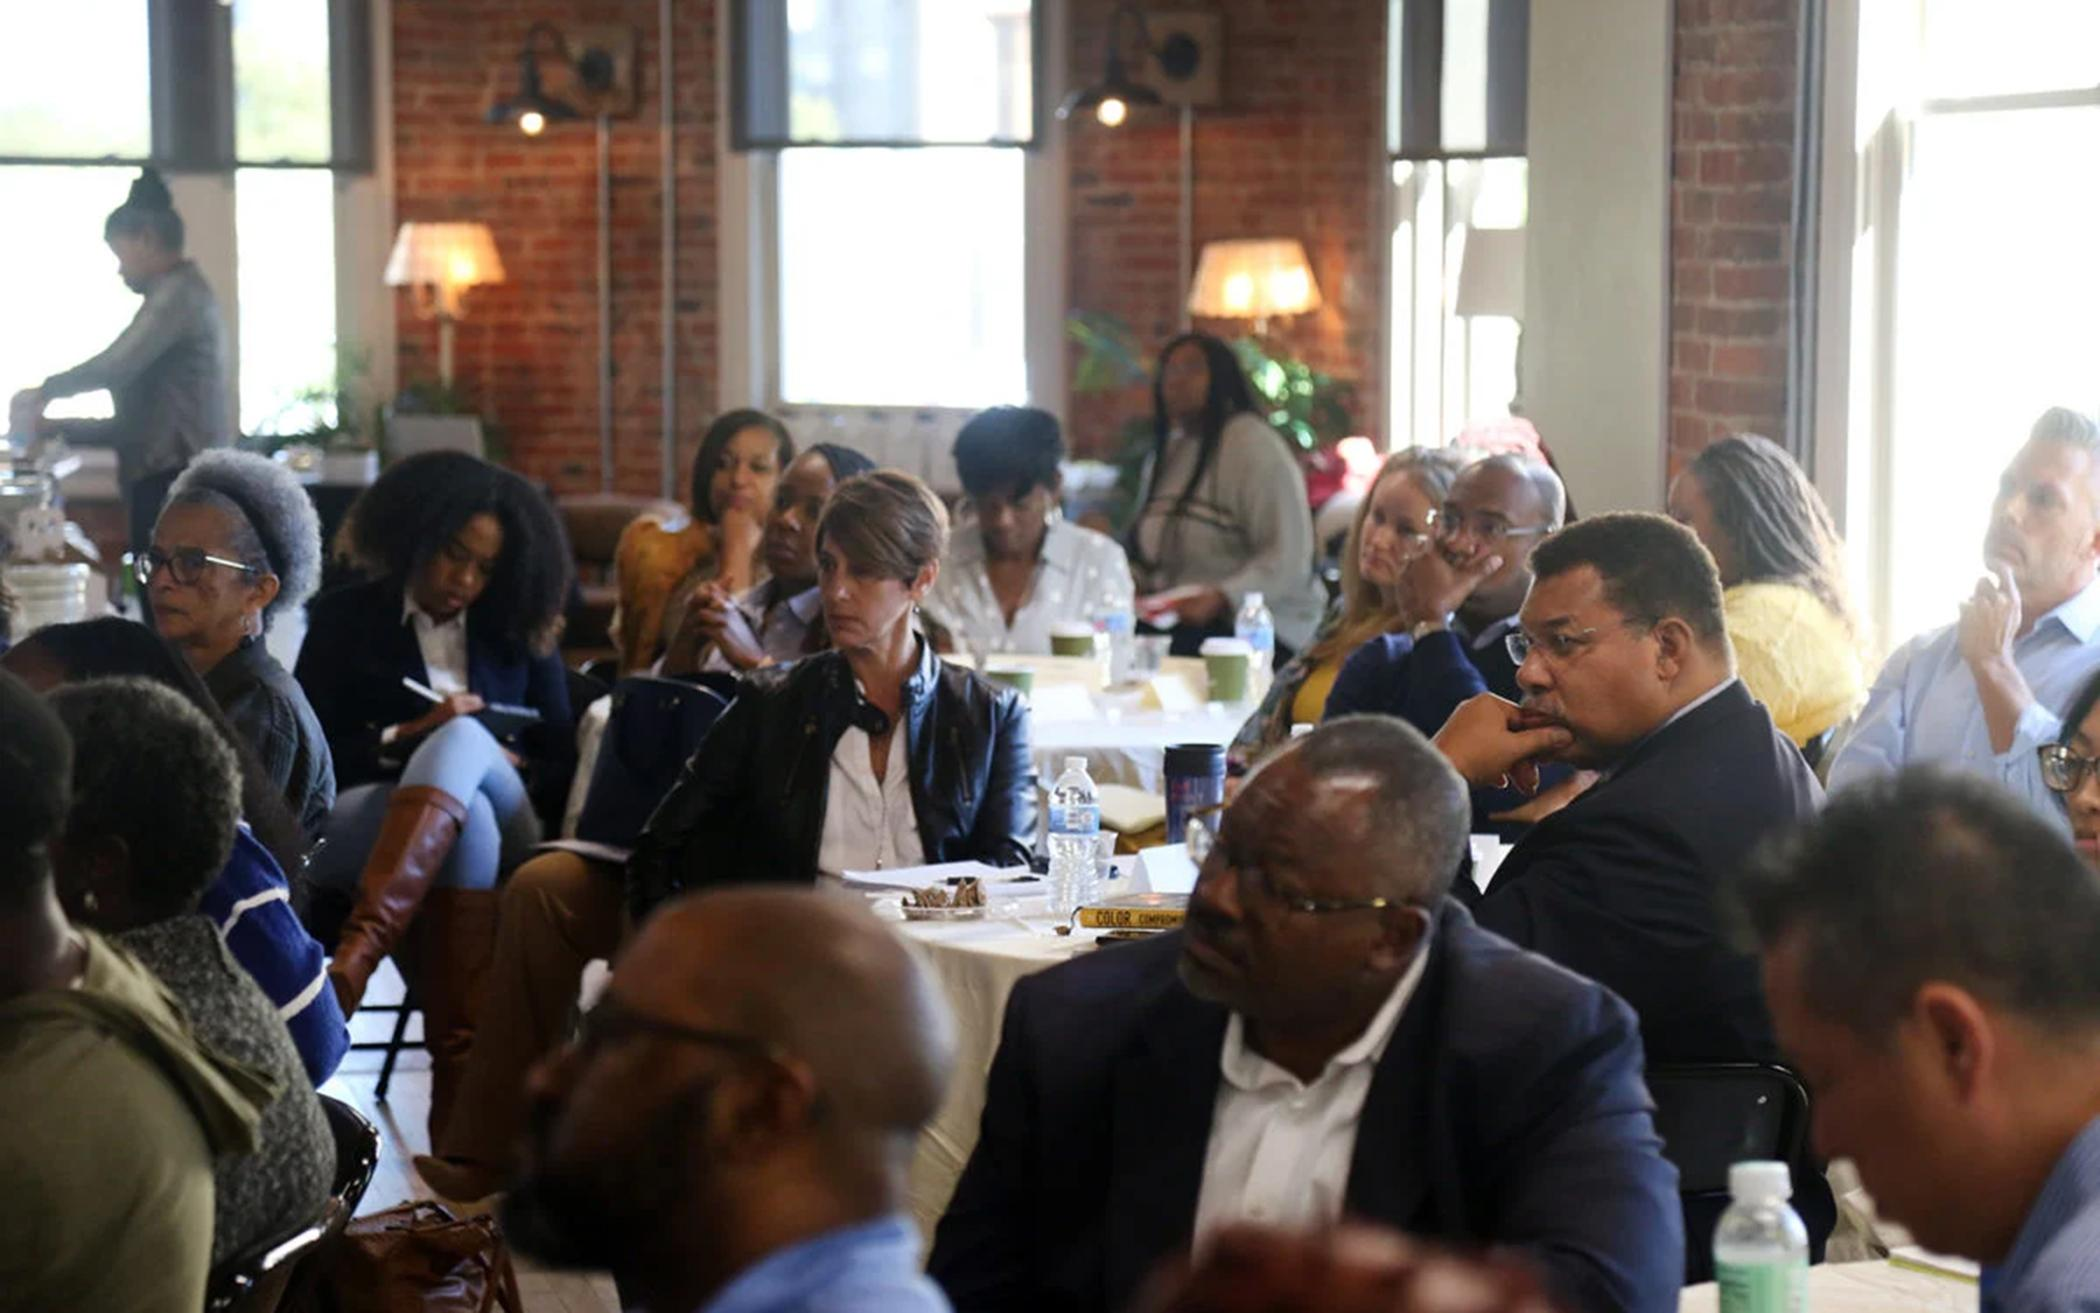 'Racialized Policing' Program Takes Faith Leaders From Grief to Action